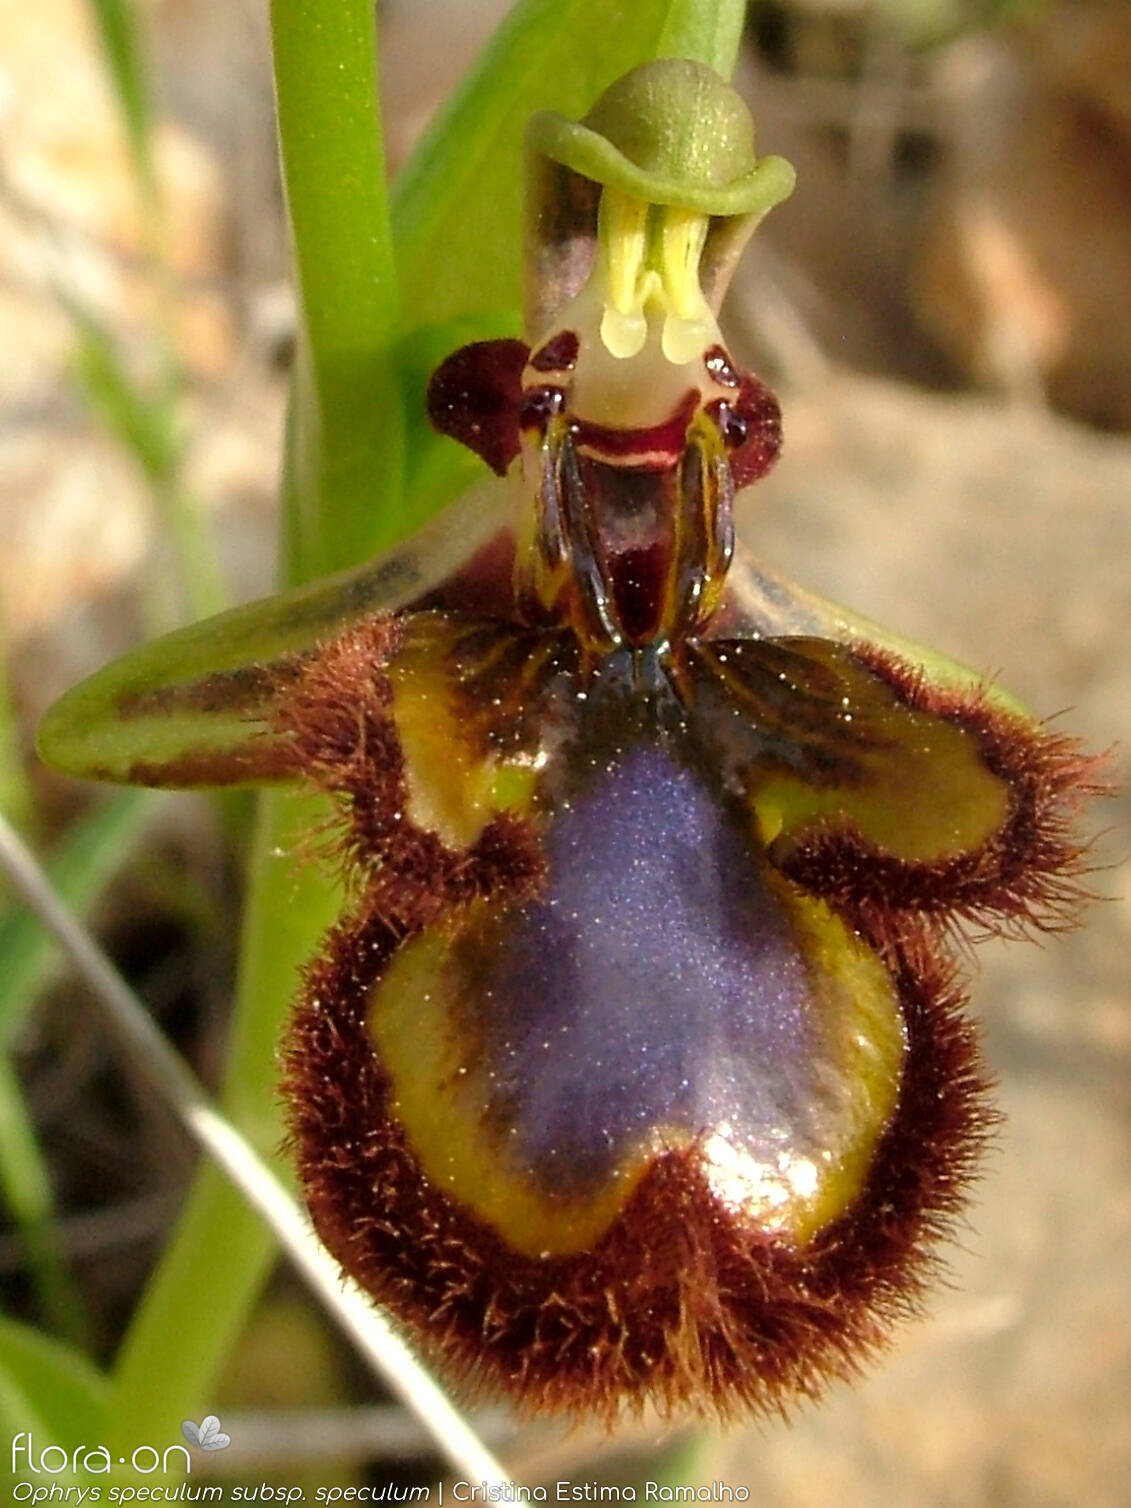 Ophrys speculum speculum - Flor (close-up) | Cristina Estima Ramalho; CC BY-NC 4.0